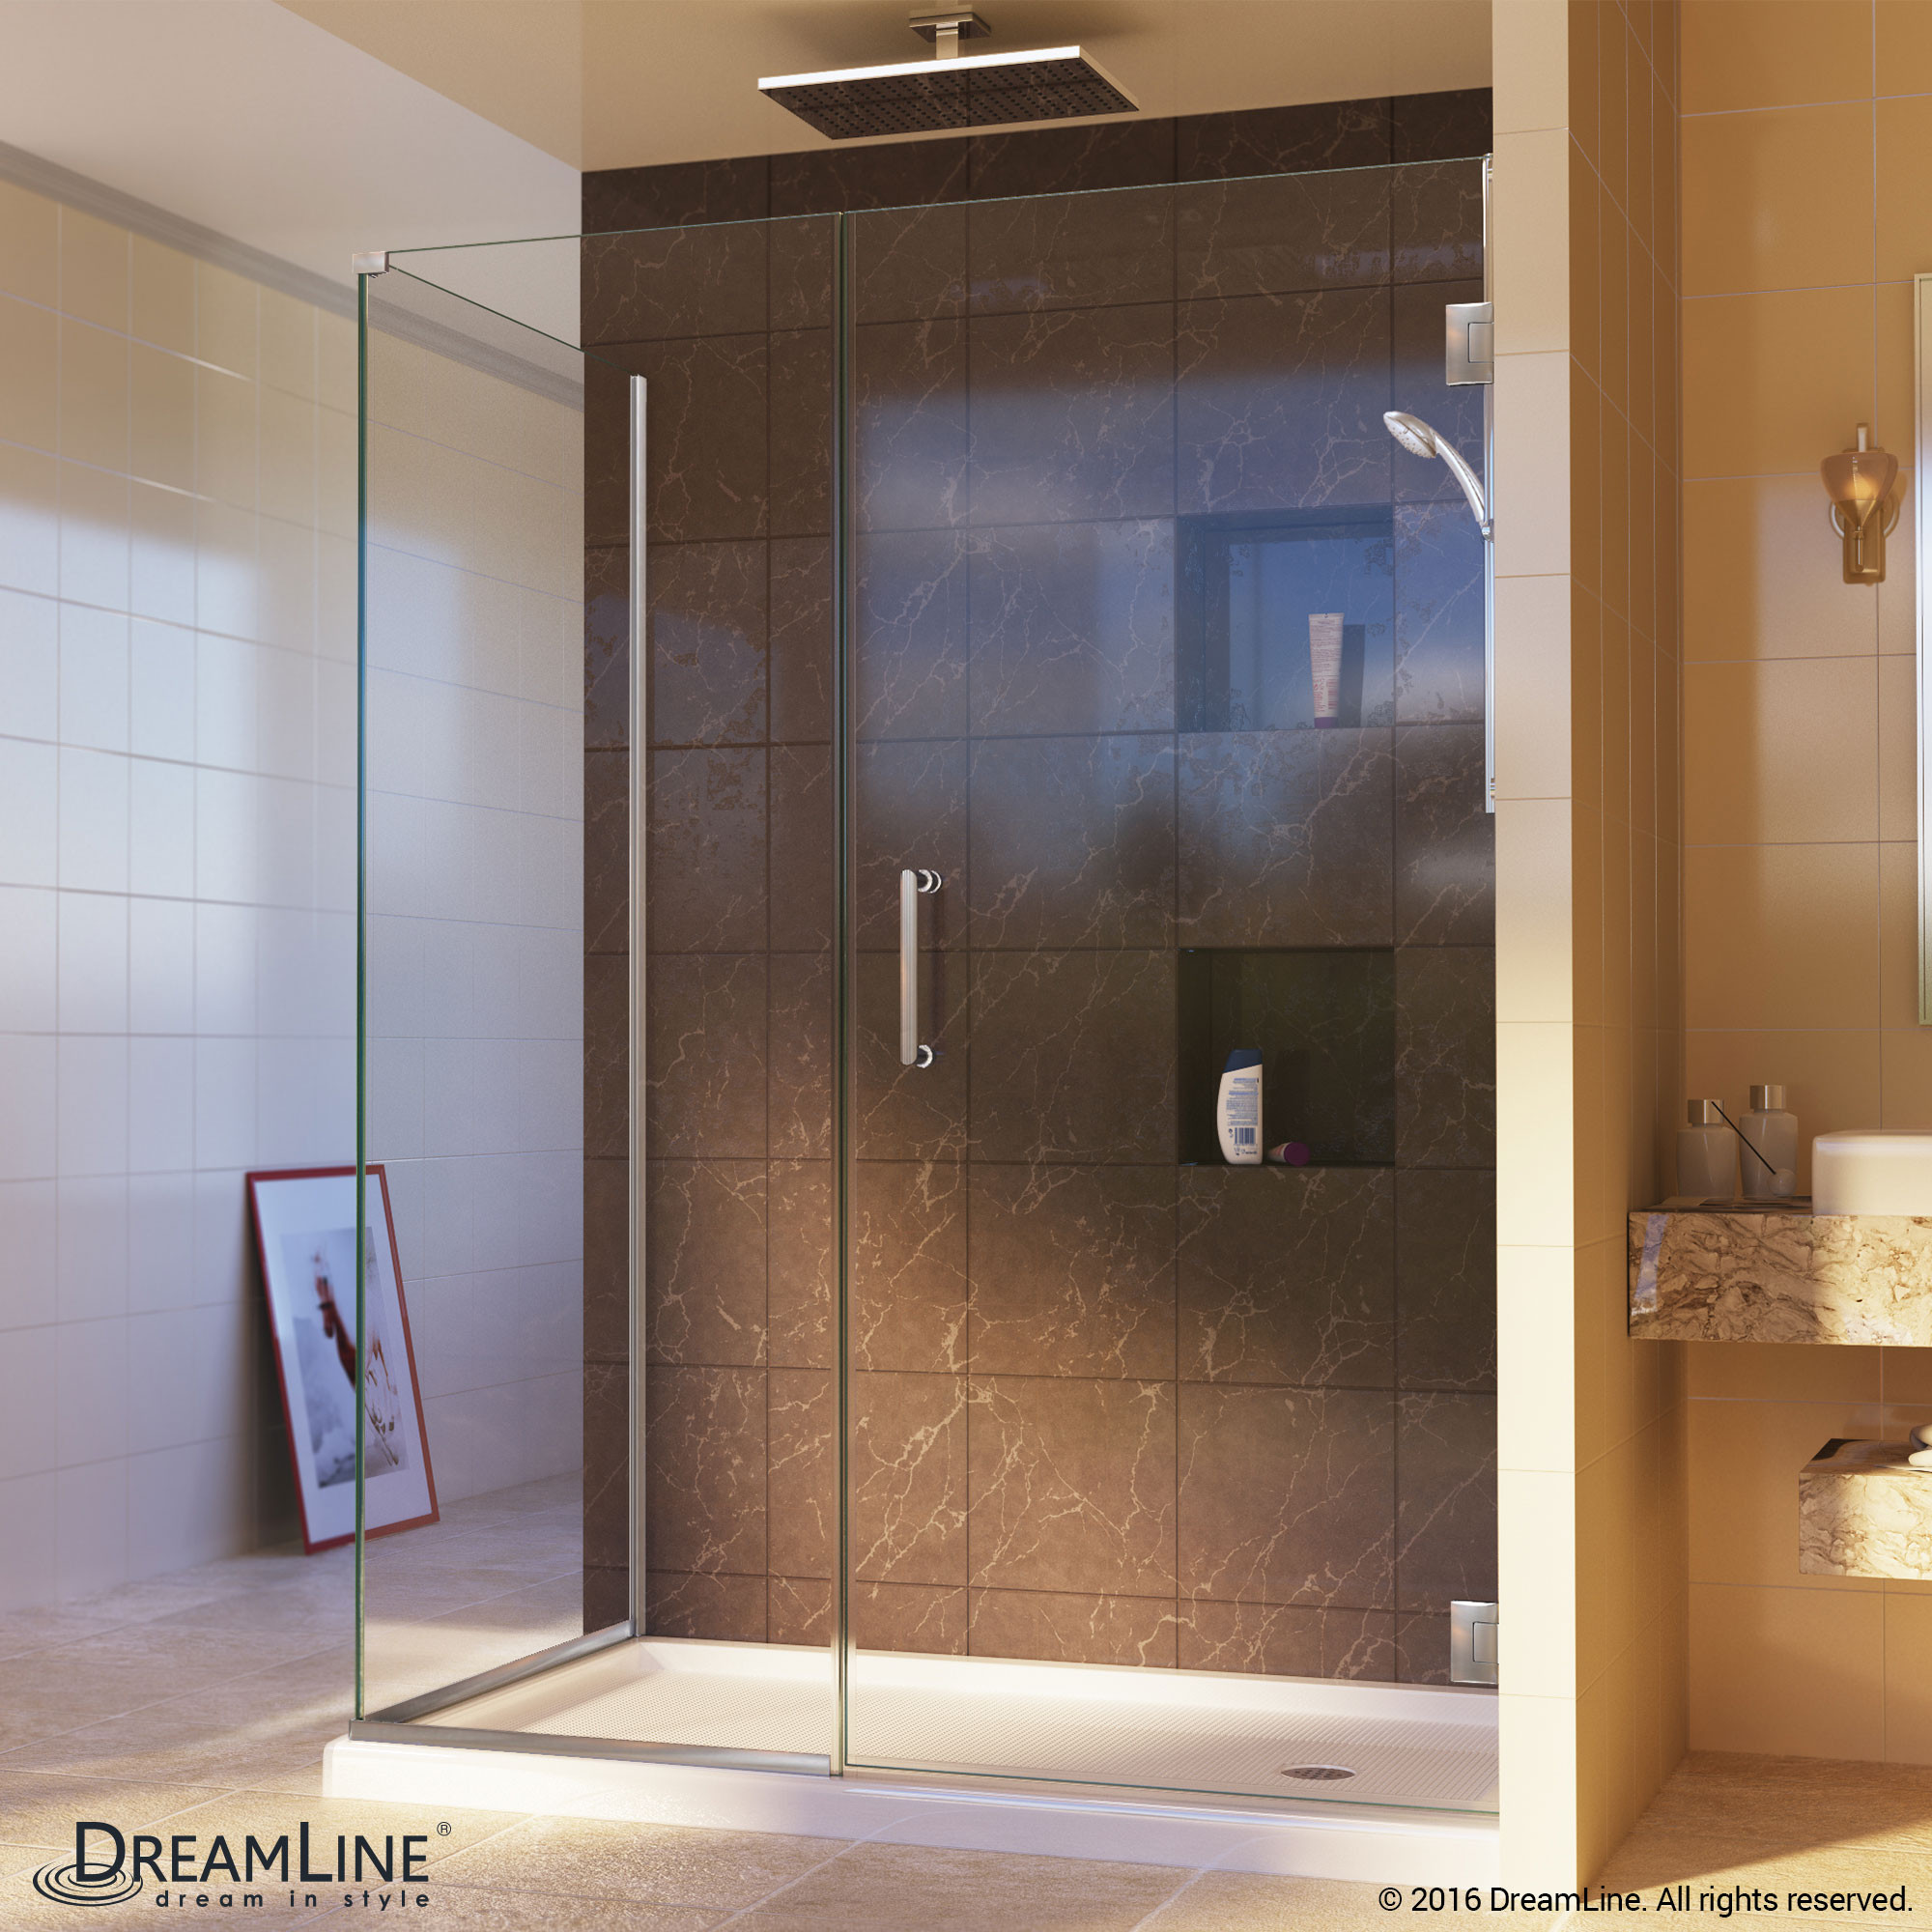 DreamLine SHEN-24515340-04 Unidoor Plus Hinged Shower Enclosure In Brushed Nickel Finish Hardware